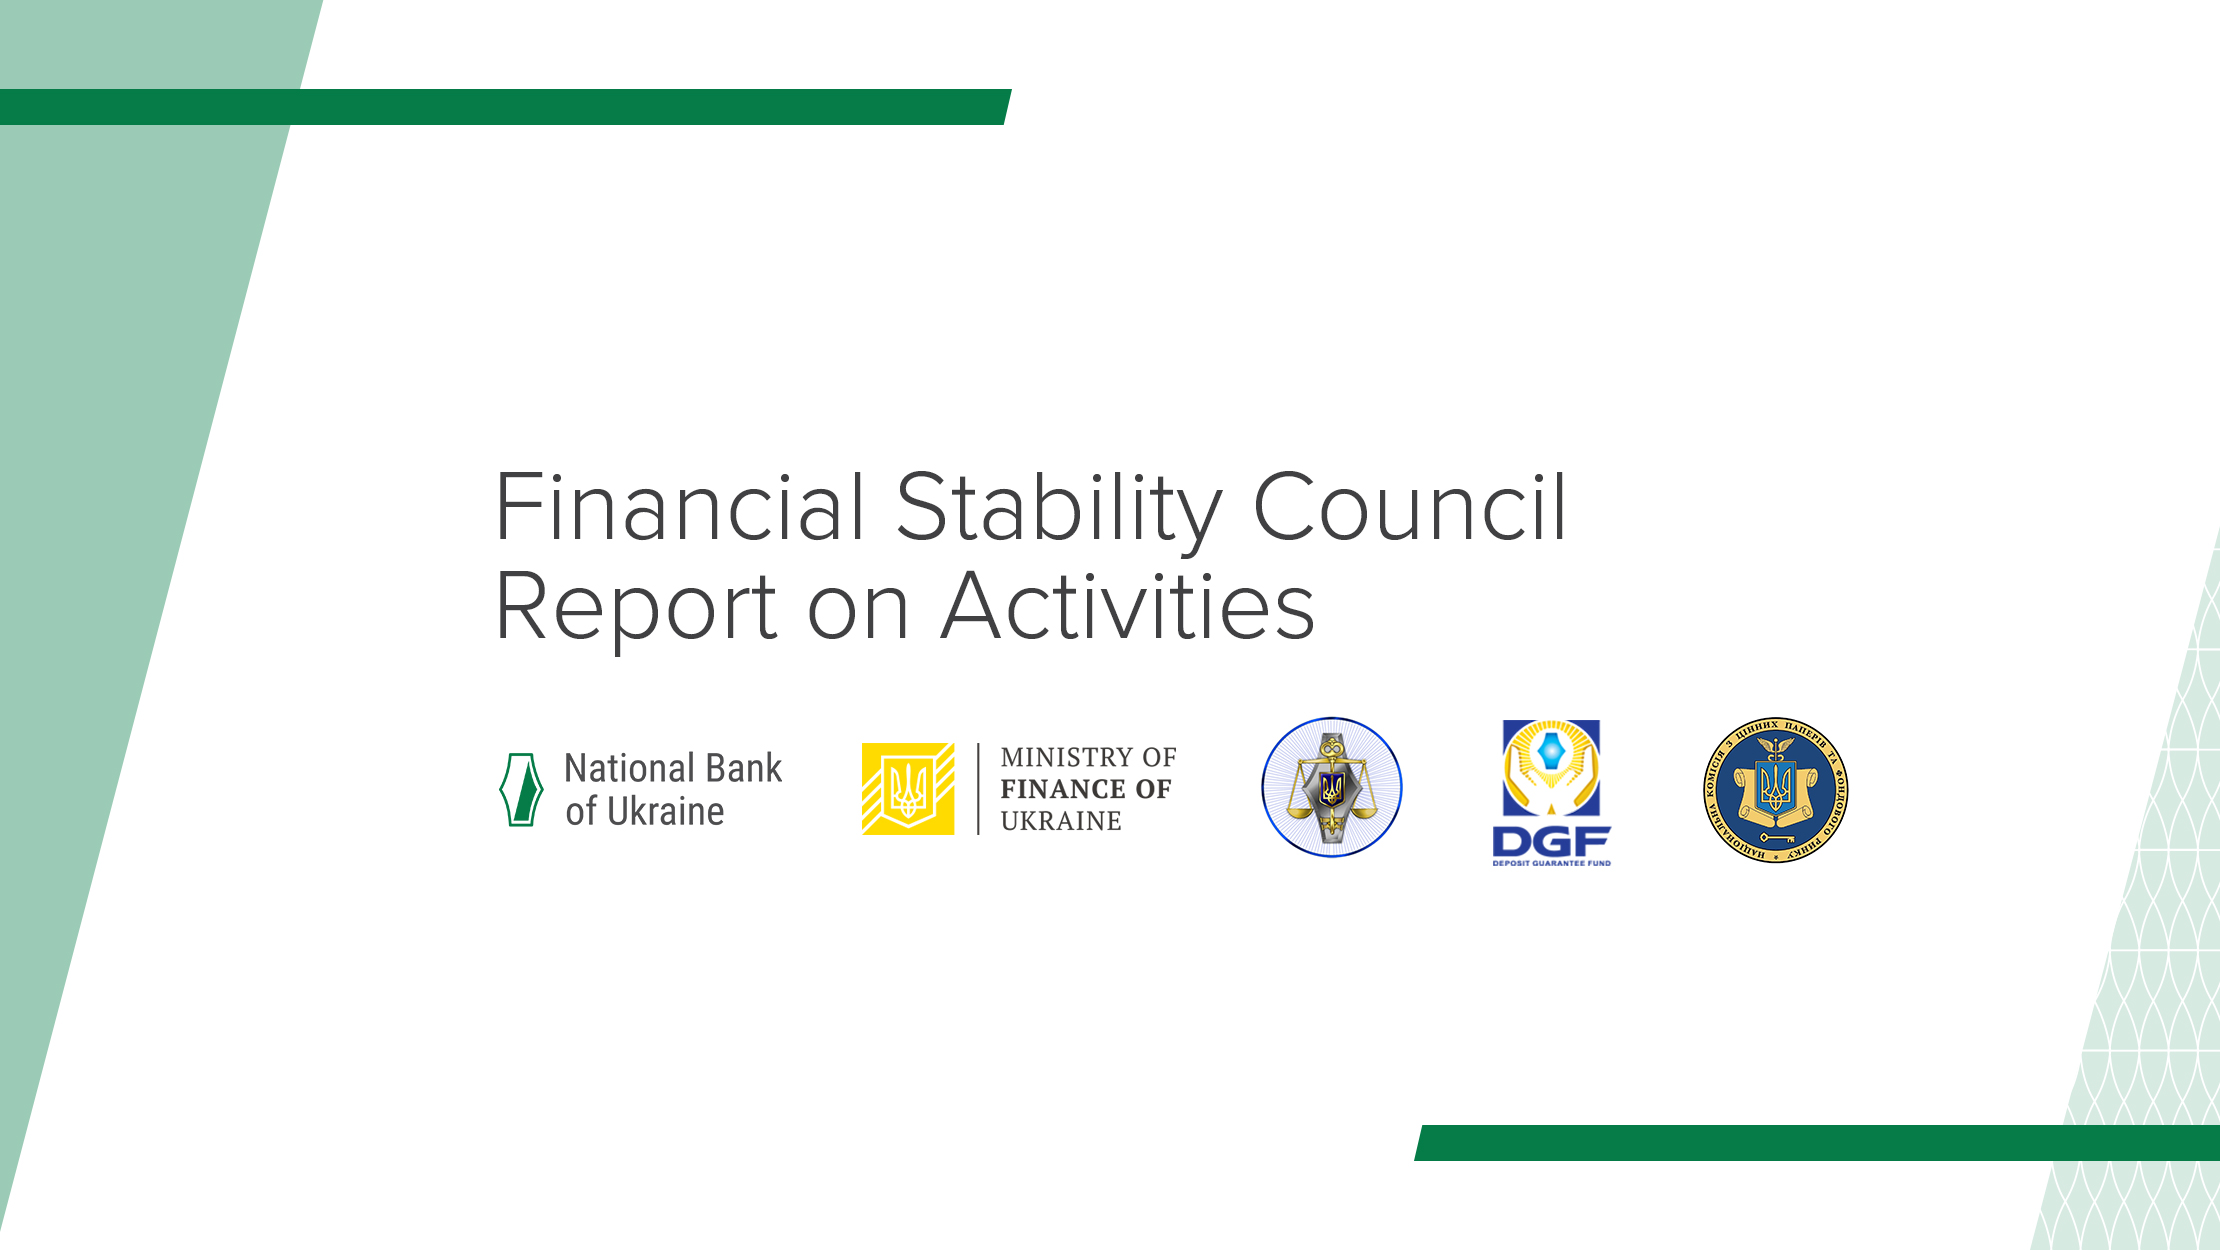 Financial Stability Council Report on Activities (April 2015 – March 2016)